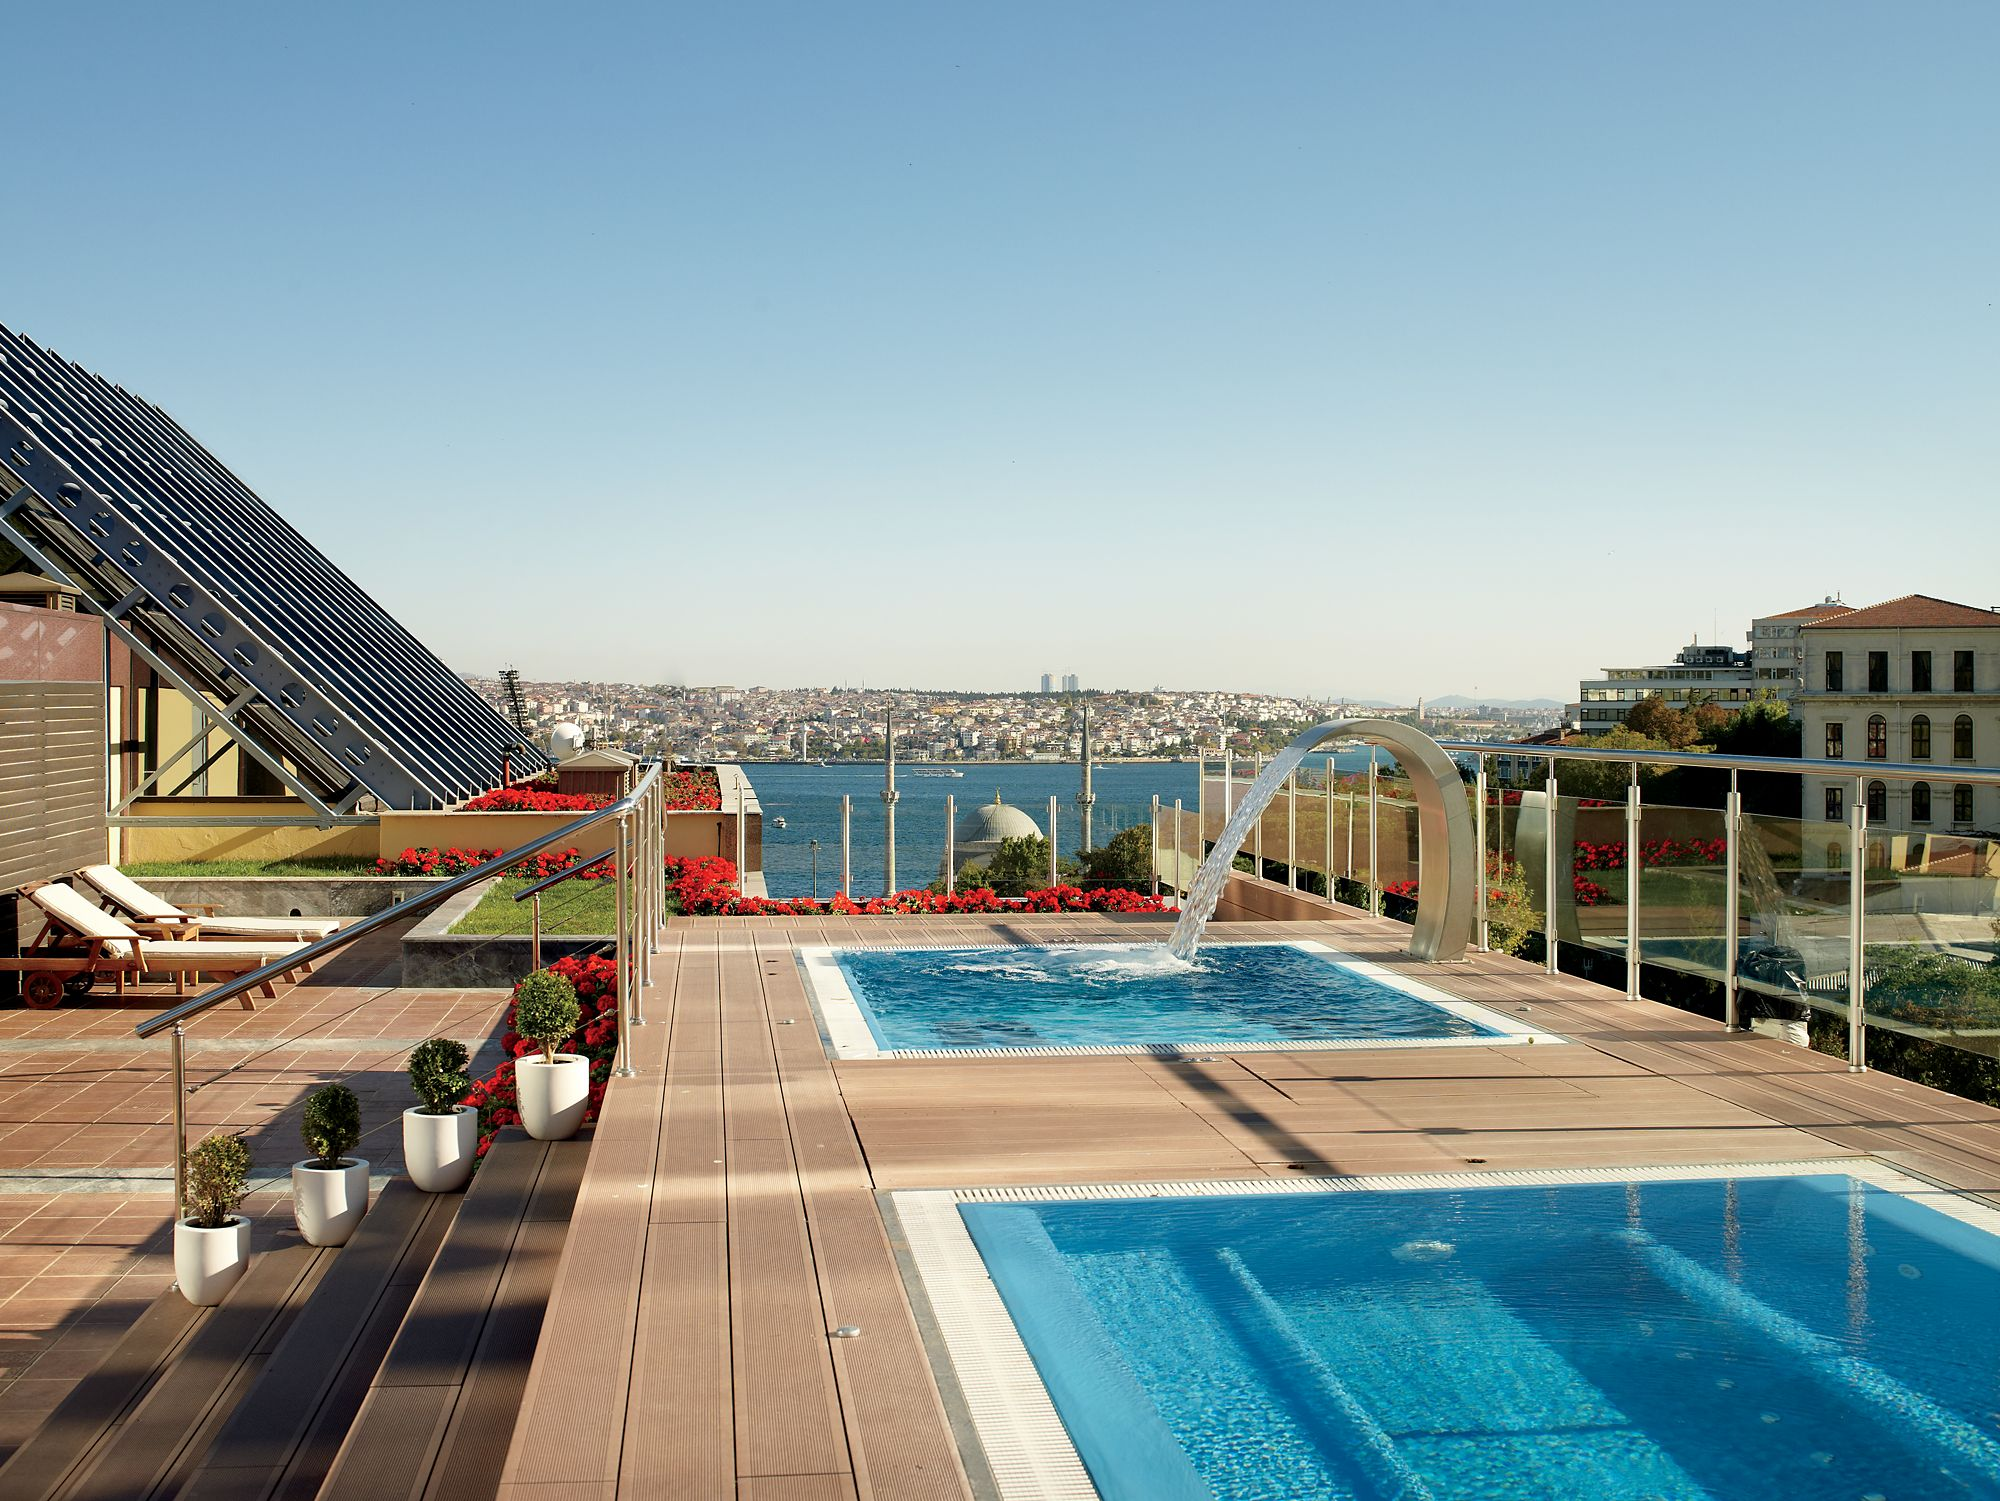 Outdoor space with steps leading up to two square whirlpools and a glass fence looking out over the water